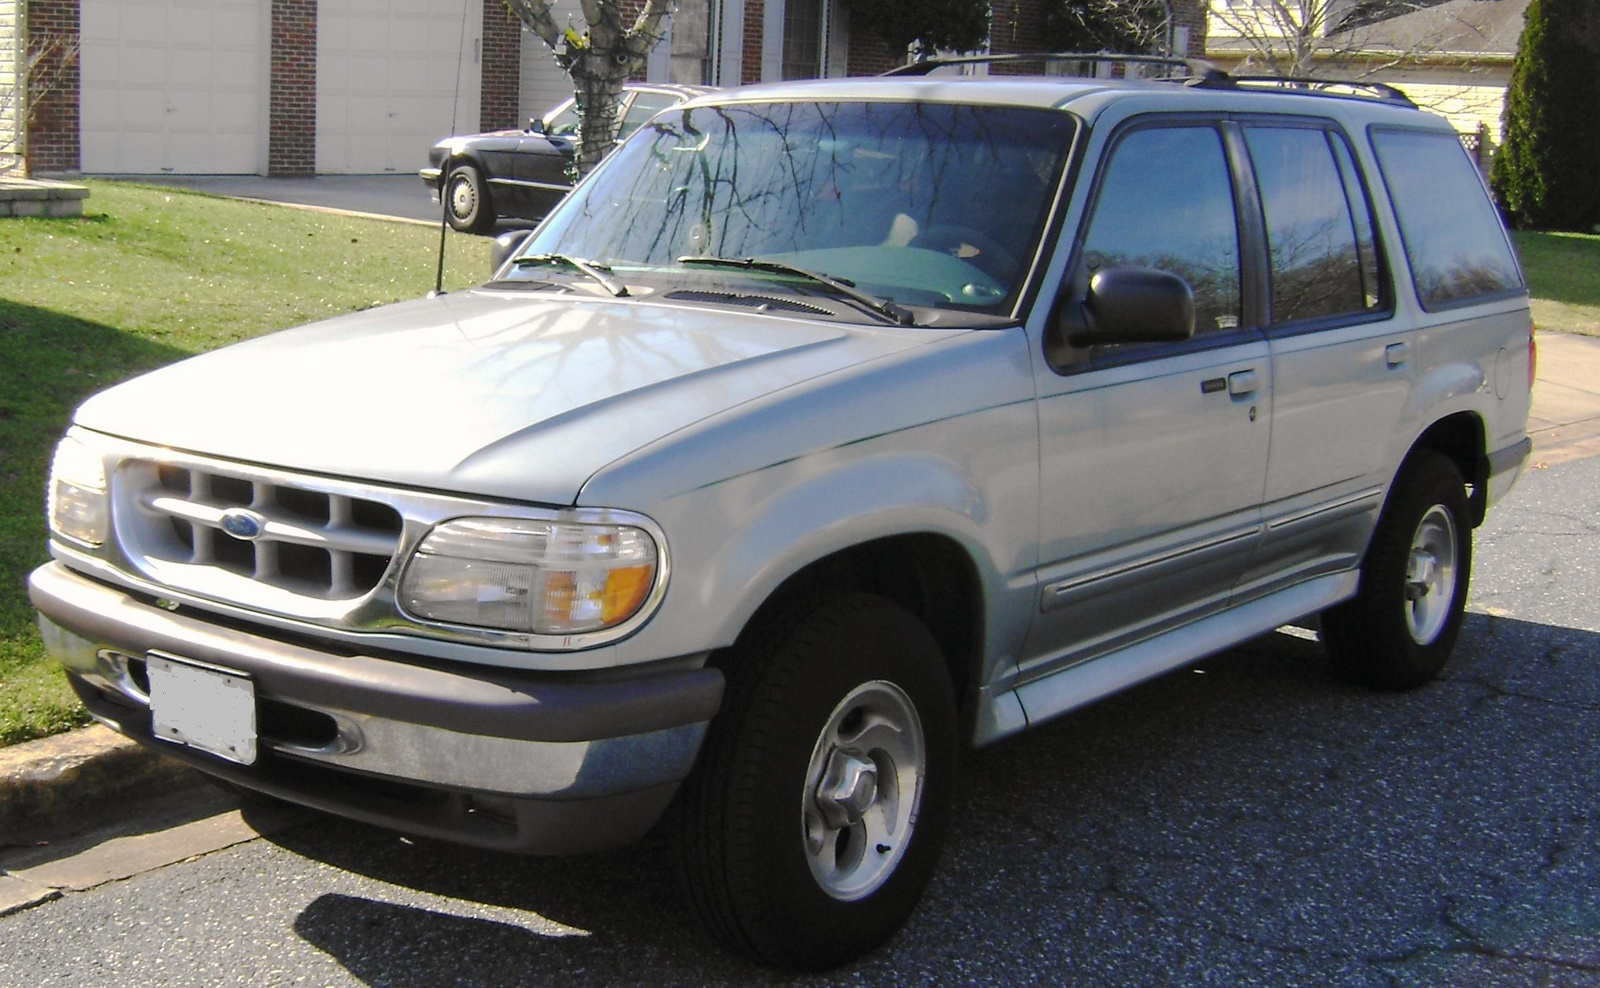 Picture of 1996 ford explorer 4 dr xlt 4wd suv exterior